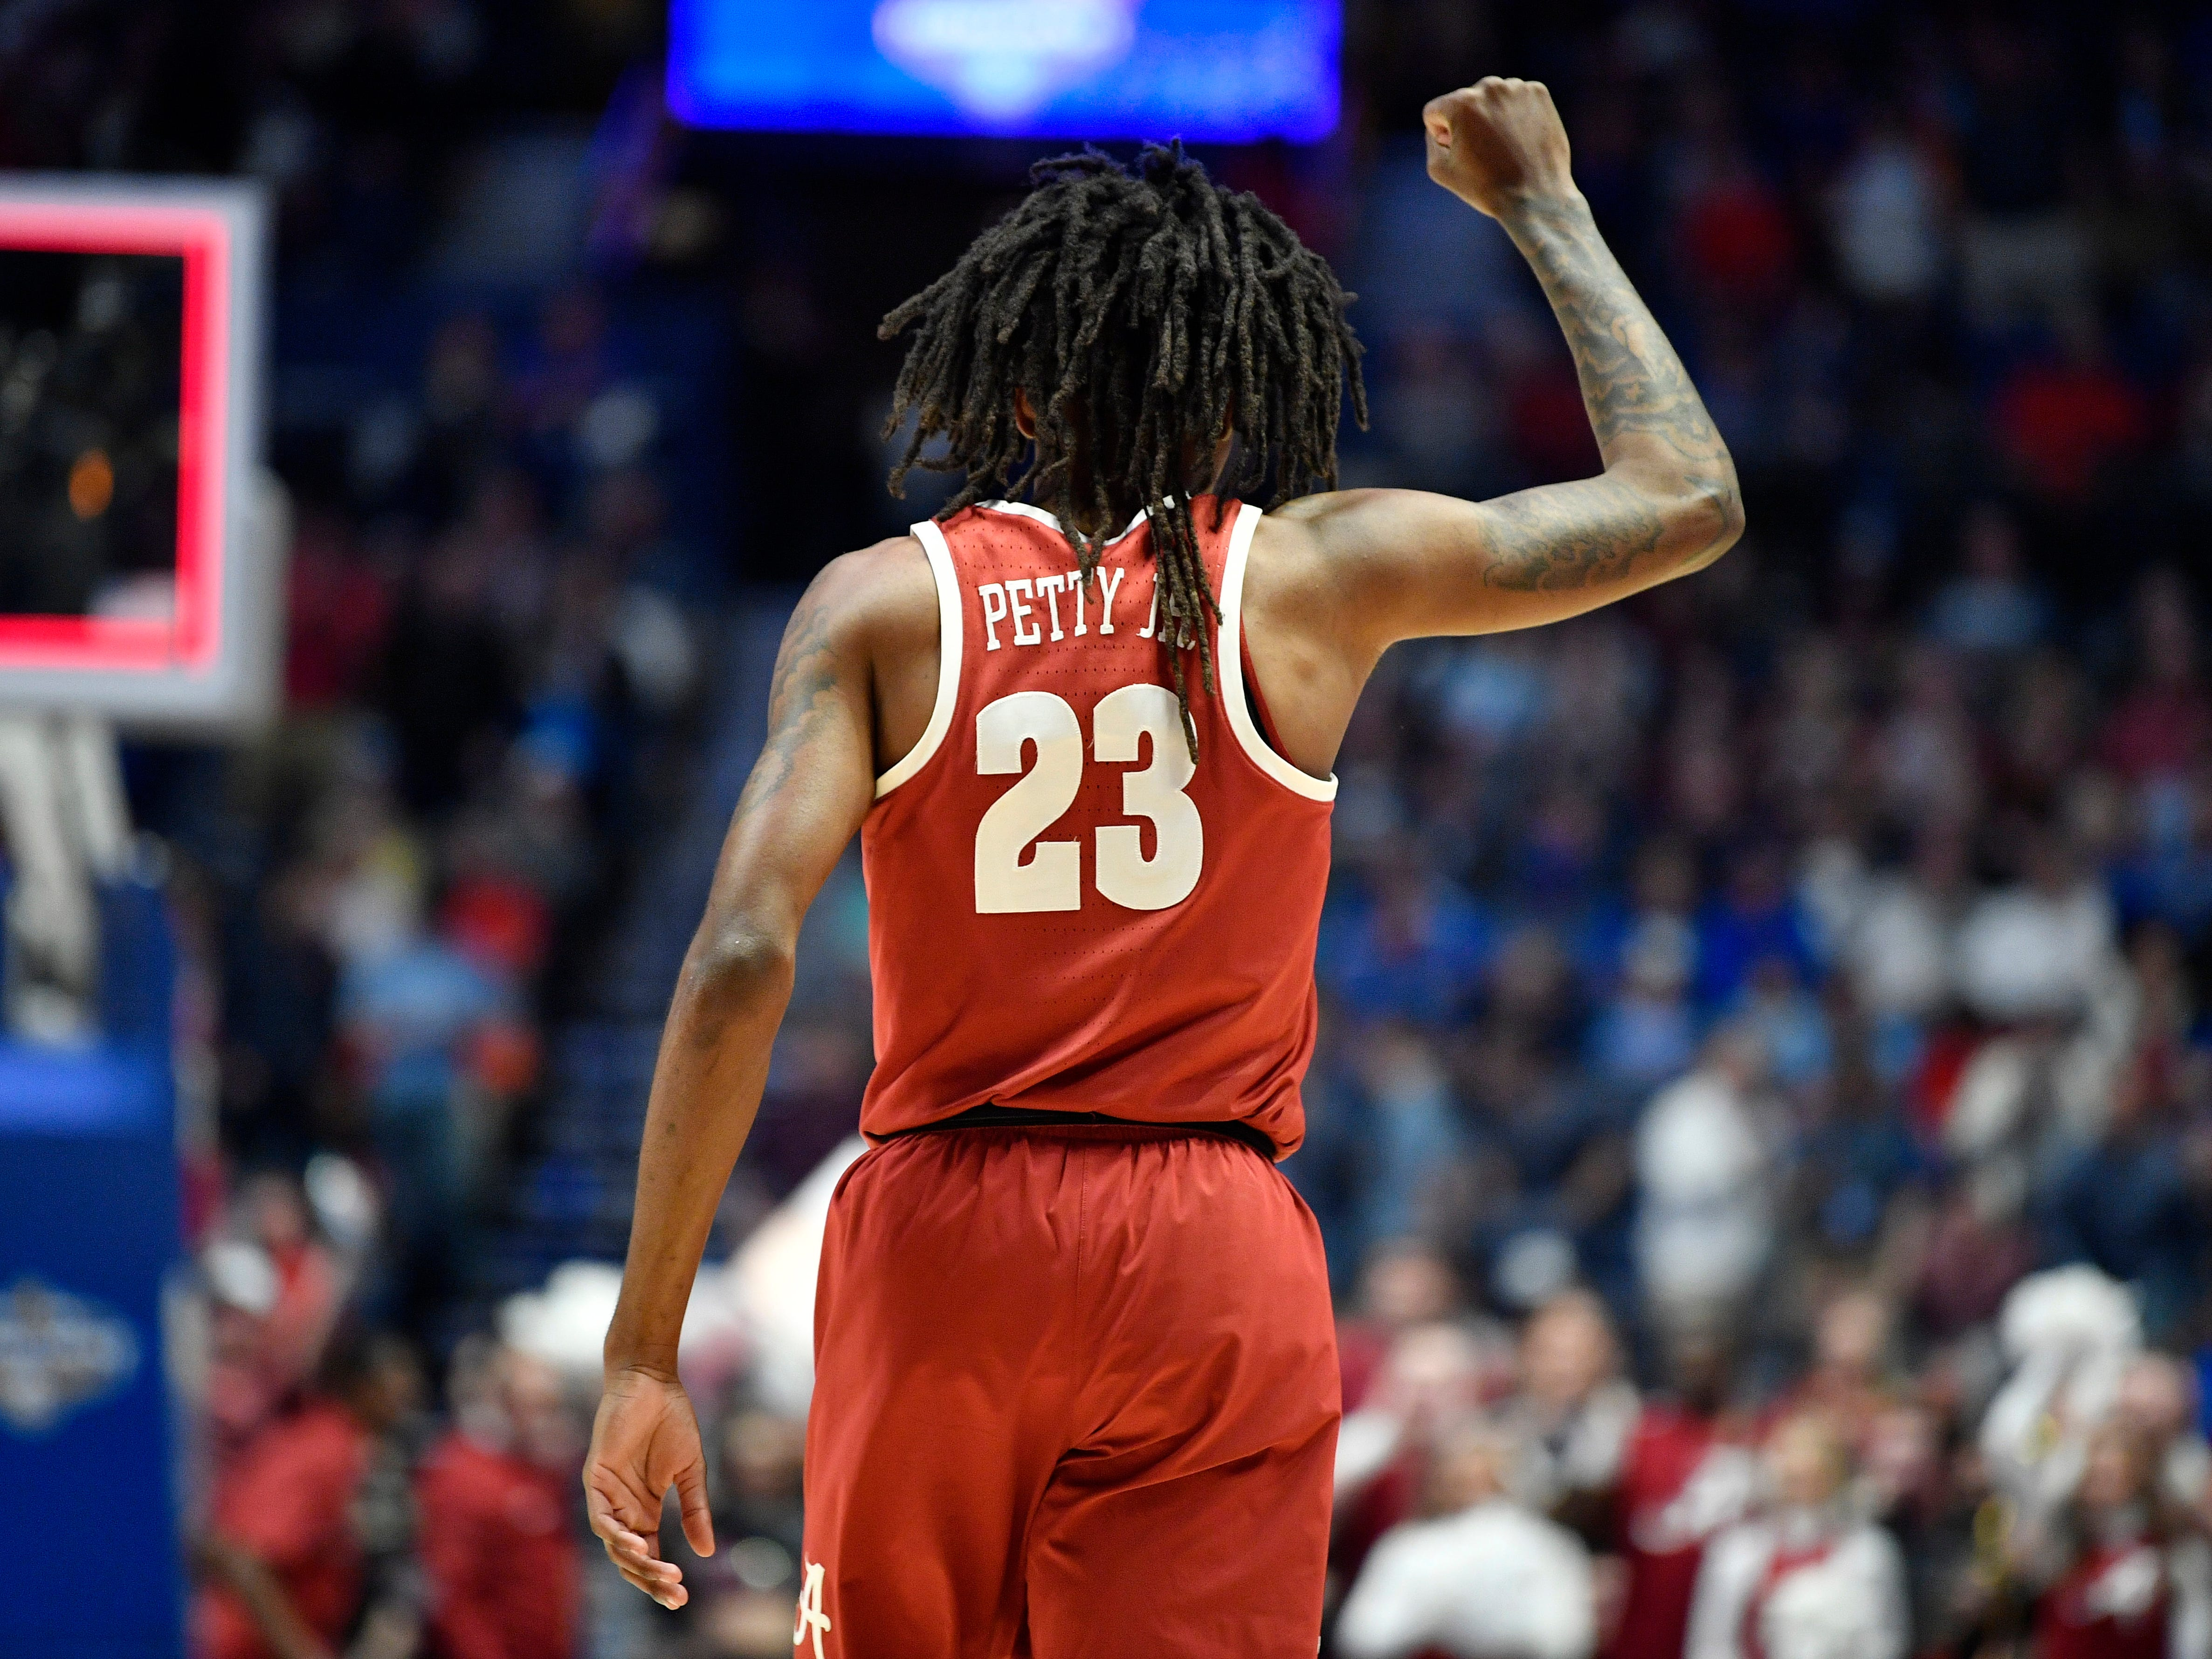 Alabama guard John Petty (23) celebrates in the closing minutes of the SEC Men's Basketball Tournament win over Ole Miss at Bridgestone Arena in Nashville, Tenn., Thursday, March 14, 2019.